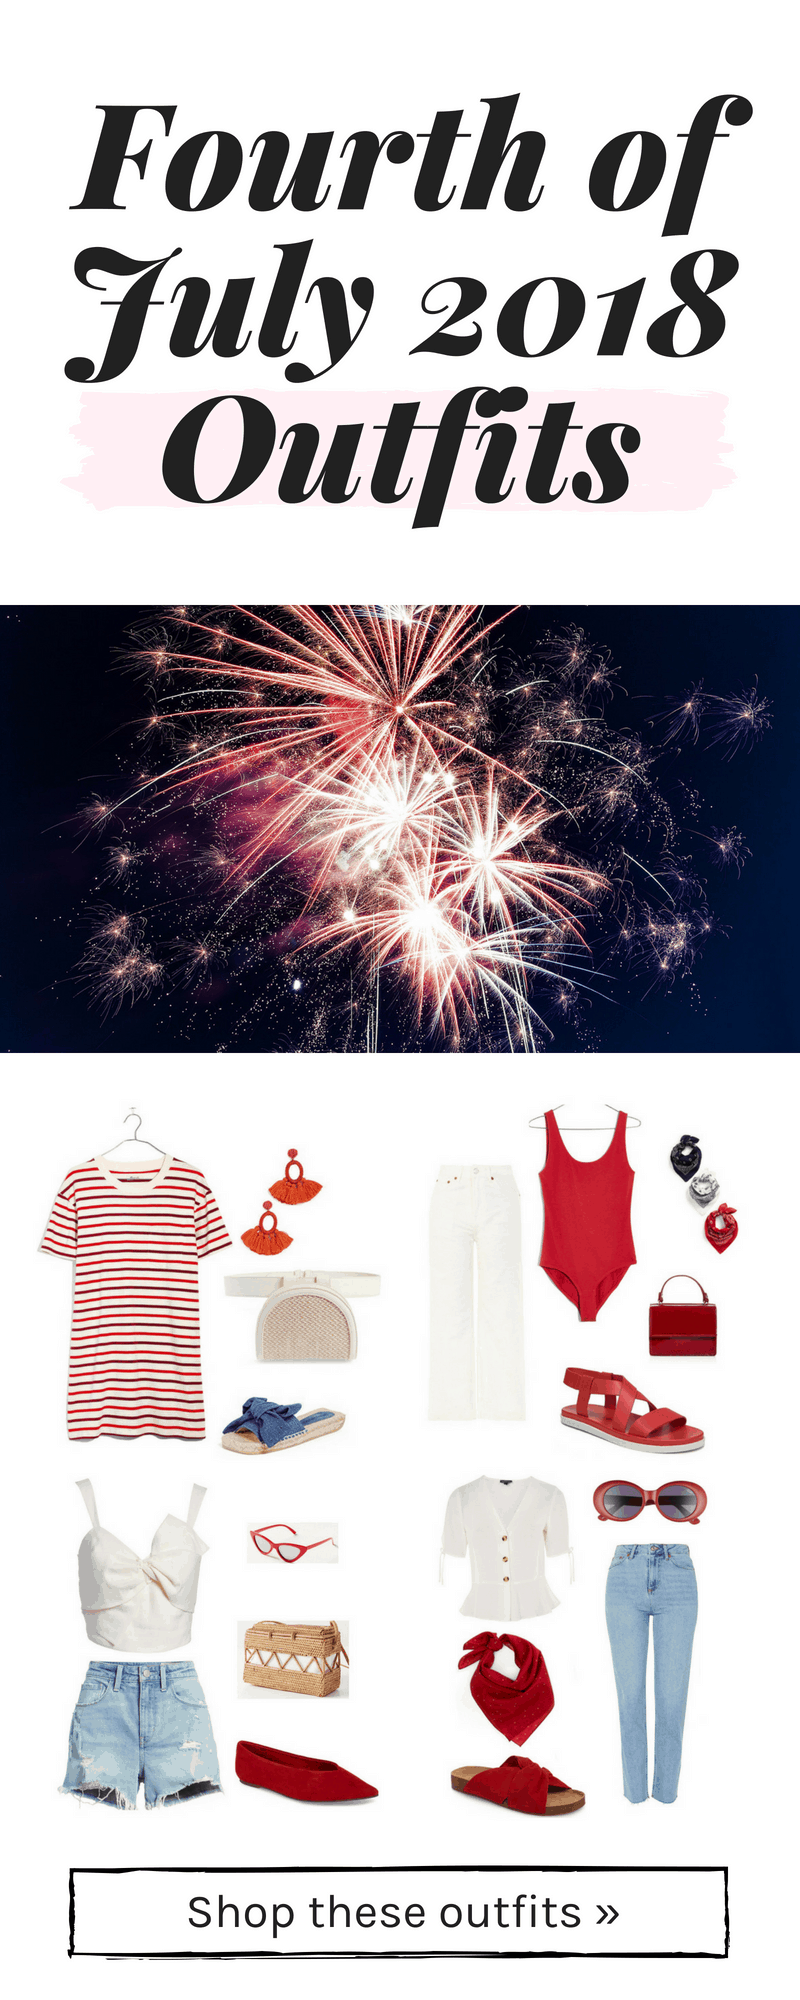 Fourth of July 2018 outfits: What to wear on the fourth of july this year